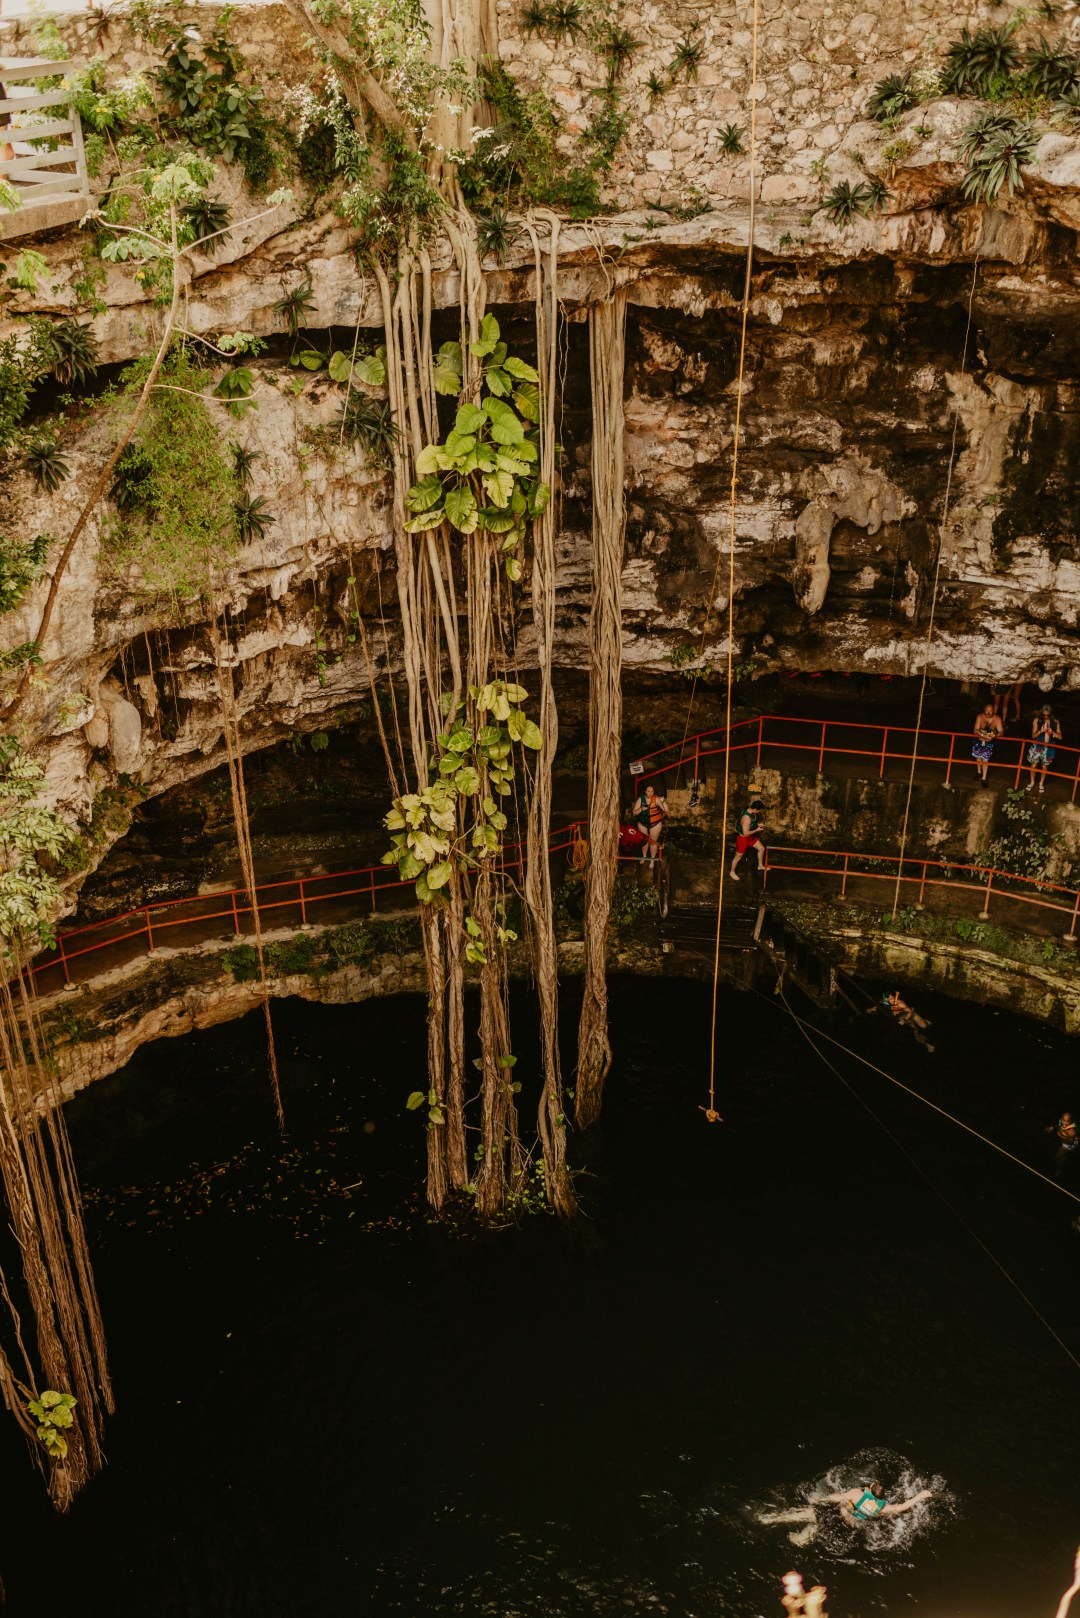 Oxman Cenote is perfect for adventure